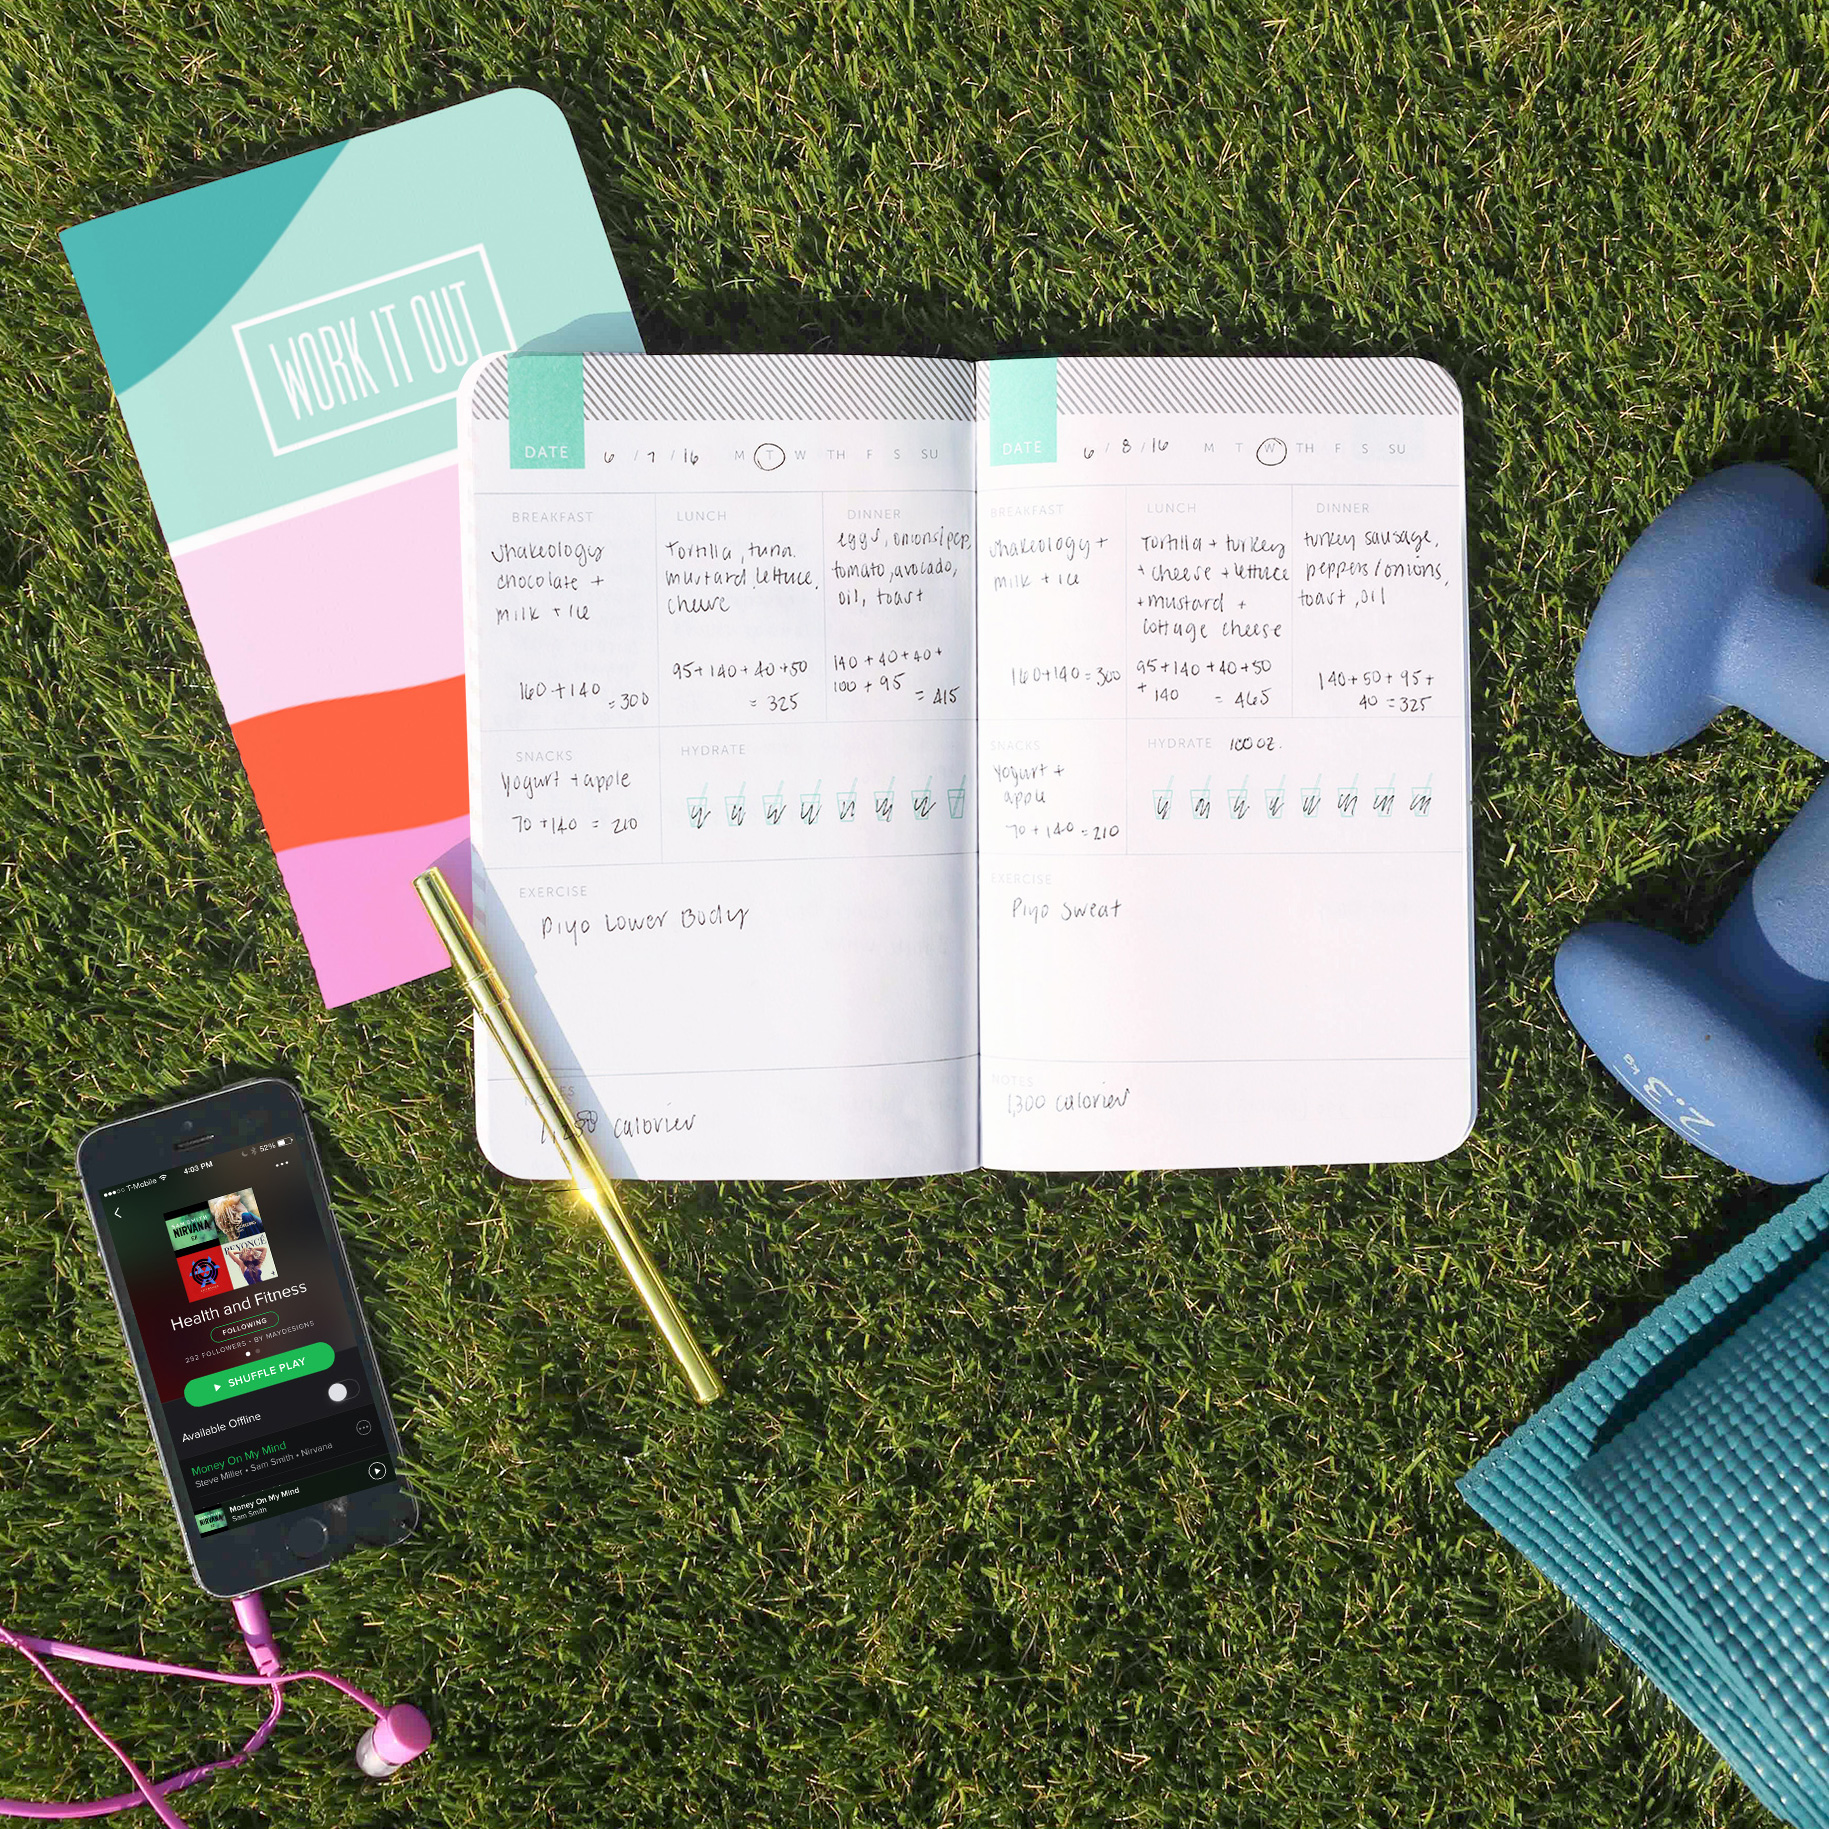 The New Year is just around the corner, so provide the healthiest people on your gift list with a dedicated space to record their goals for next year. May Designs offers a customizable journal that includes 76 pages where you can track your meals, snacks, water, and exercise habits. Their Classic size fits perfectly in gym bags or purses so tracking is never a hassle.